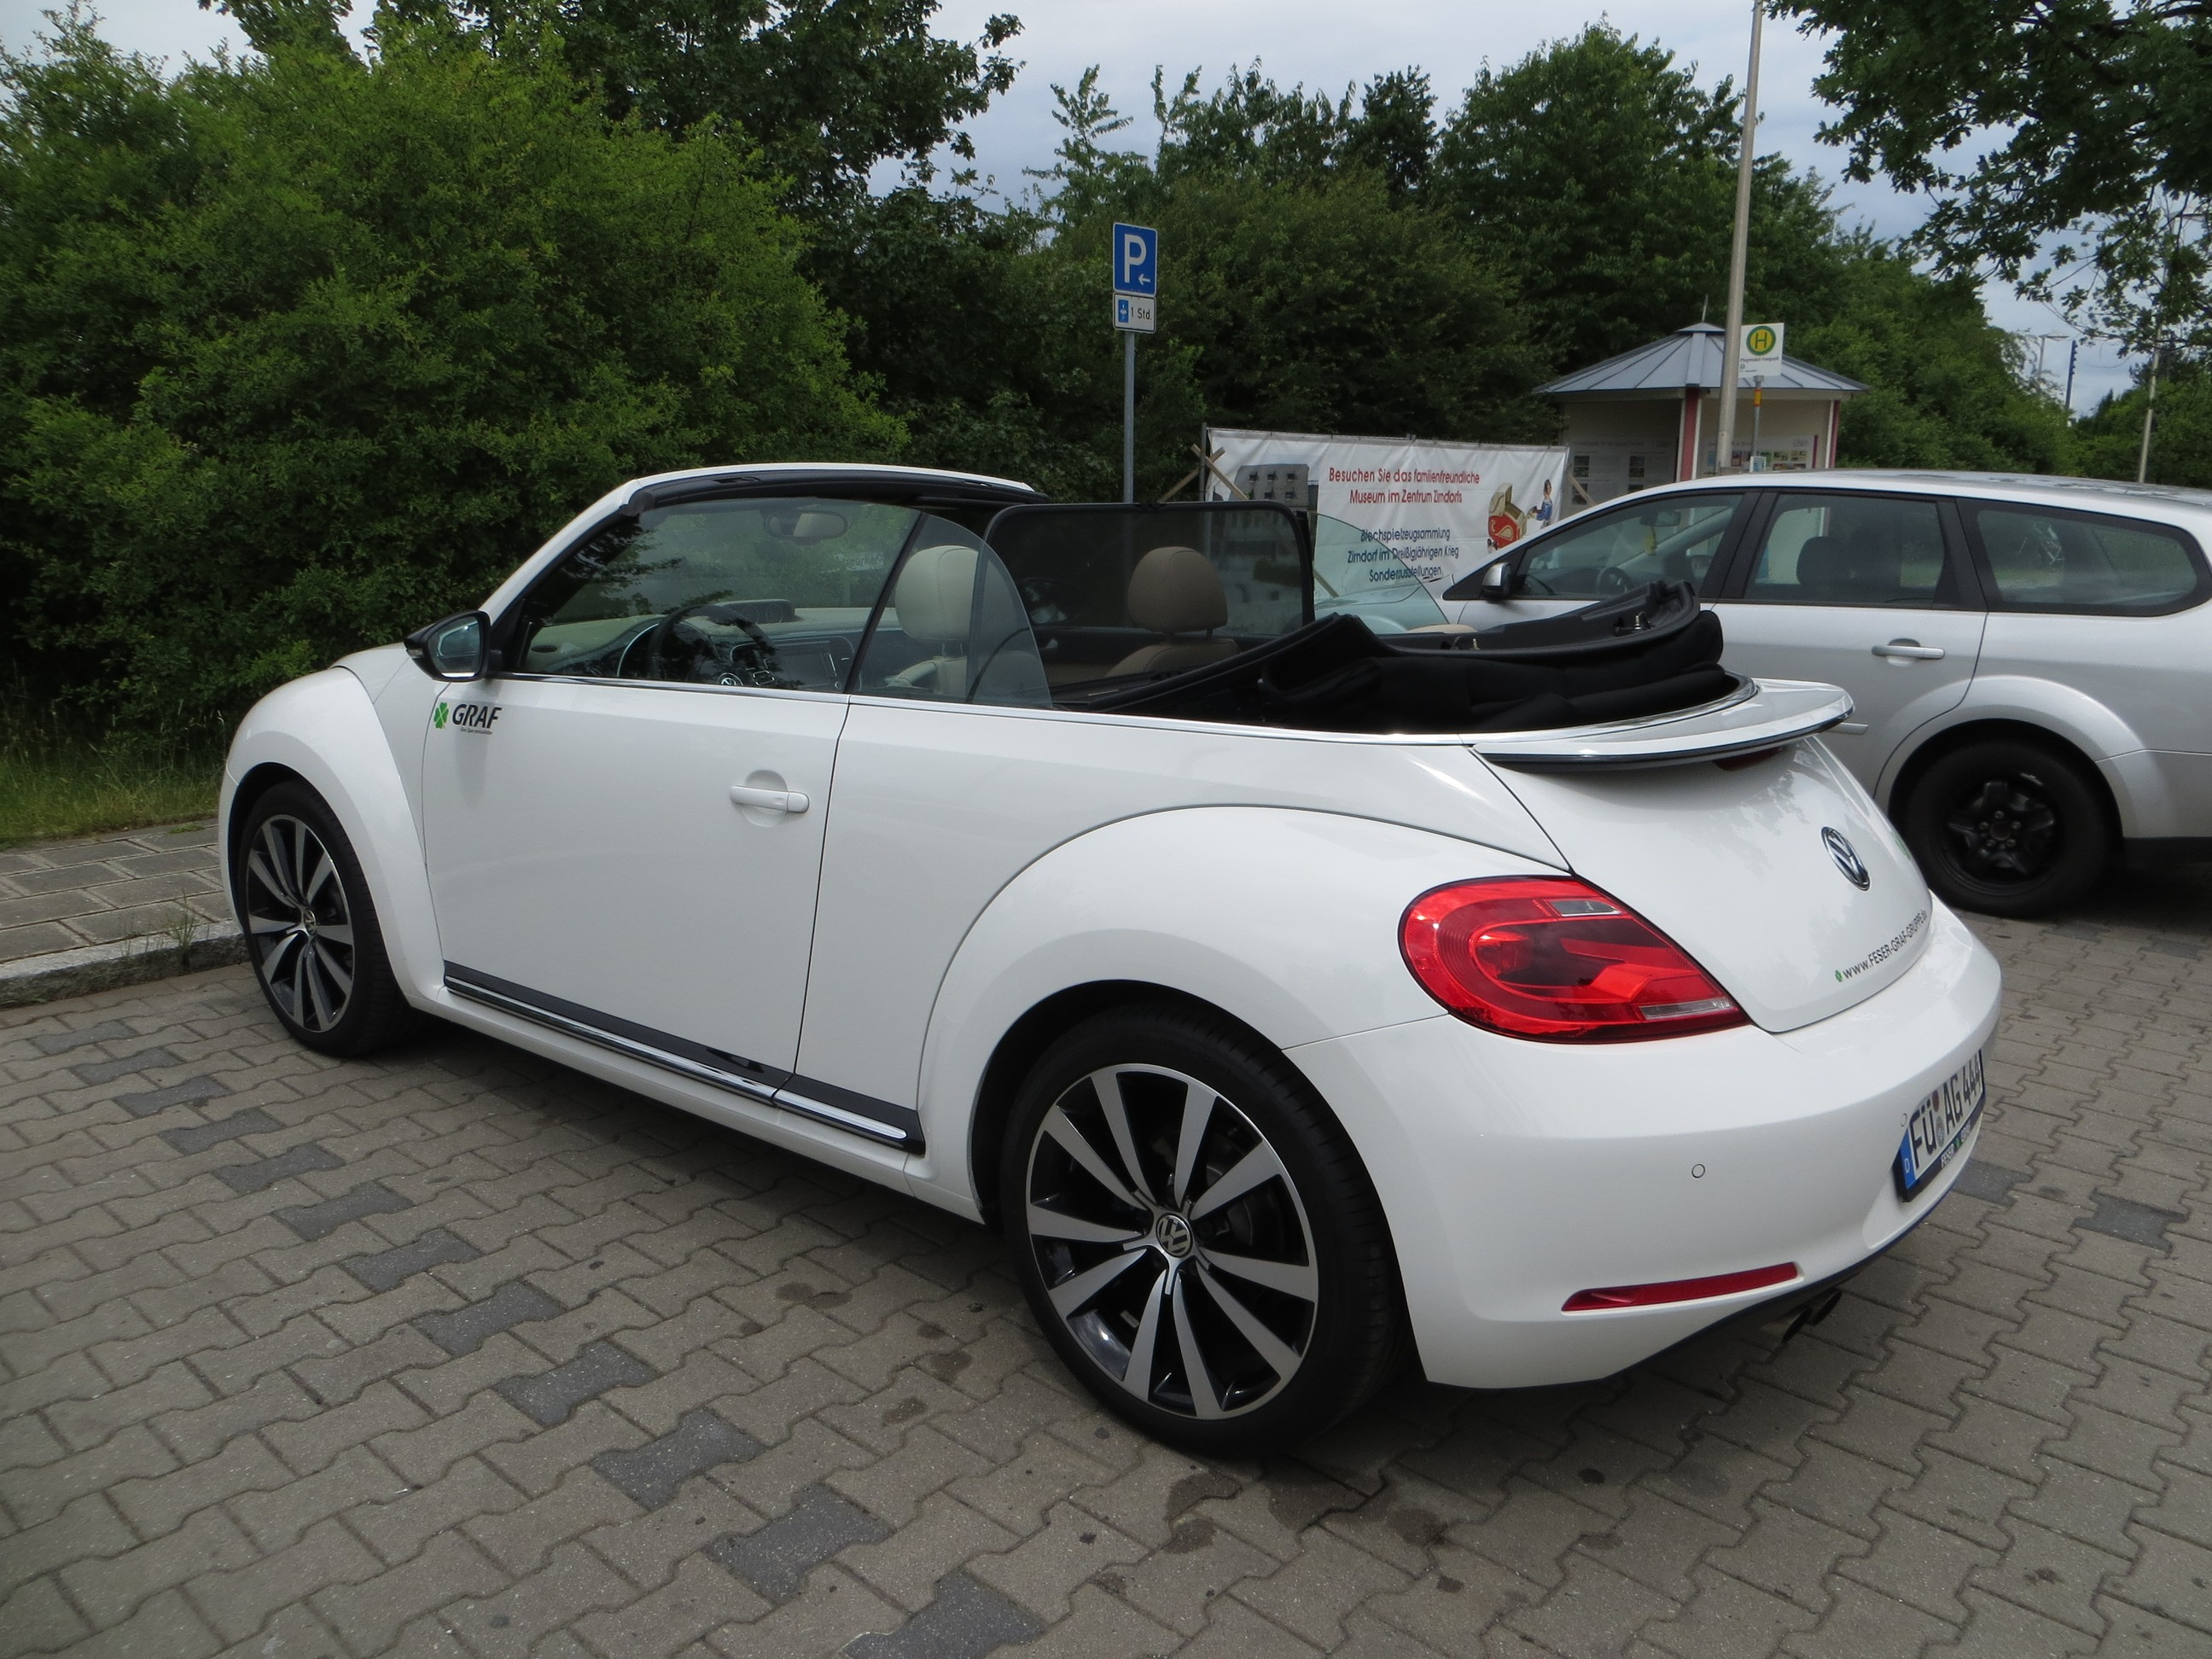 test drive rpt vw coccinelle k fer cabriolet 1 4 tsi 160ch dsg7 2013. Black Bedroom Furniture Sets. Home Design Ideas